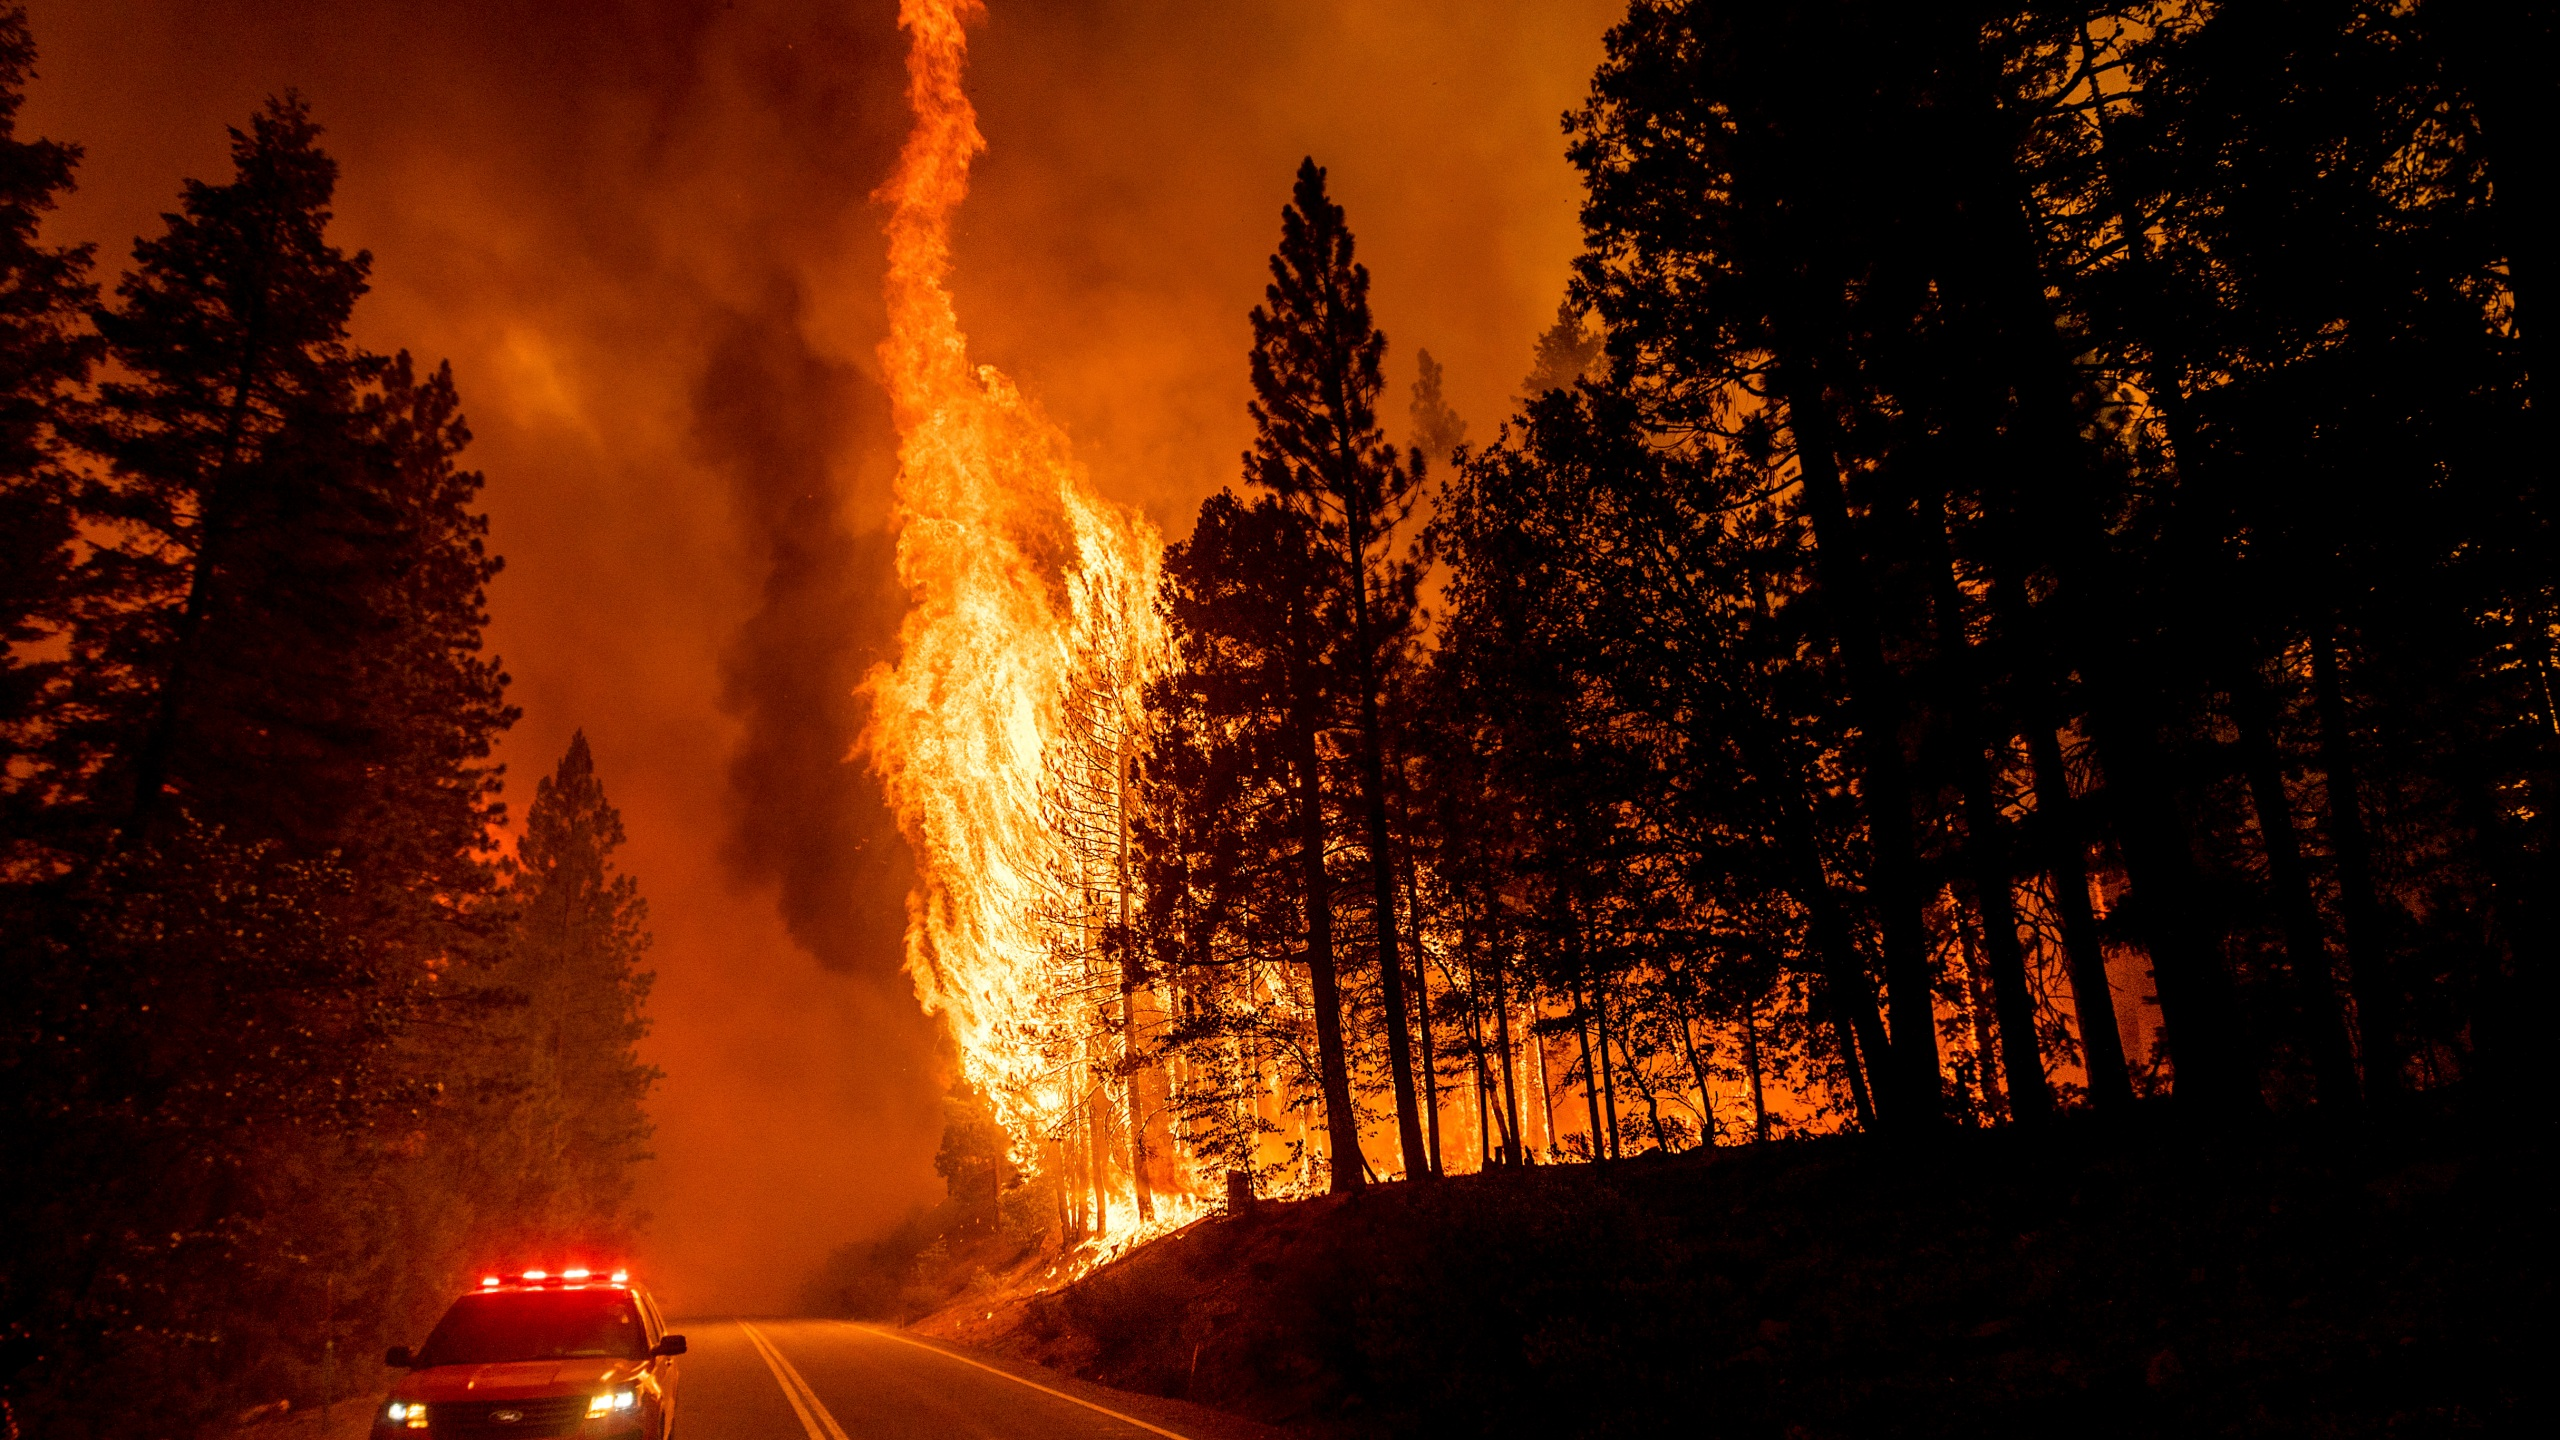 In this Aug. 3, 2021, file photo, flames leap from trees as the Dixie Fire jumps Highway 89 north of Greenville in Plumas County, Calif. Each year thousands of acres of dense timber are thinned near remote communities, all designed to slow the spread of massive wildfires. While most scientific studies find such forest management is a valuable tool, environmental advocates say data from recent gigantic wildfires support their long-running assertion that efforts to slow wildfires have instead accelerated their spread. (AP Photo/Noah Berger, File)